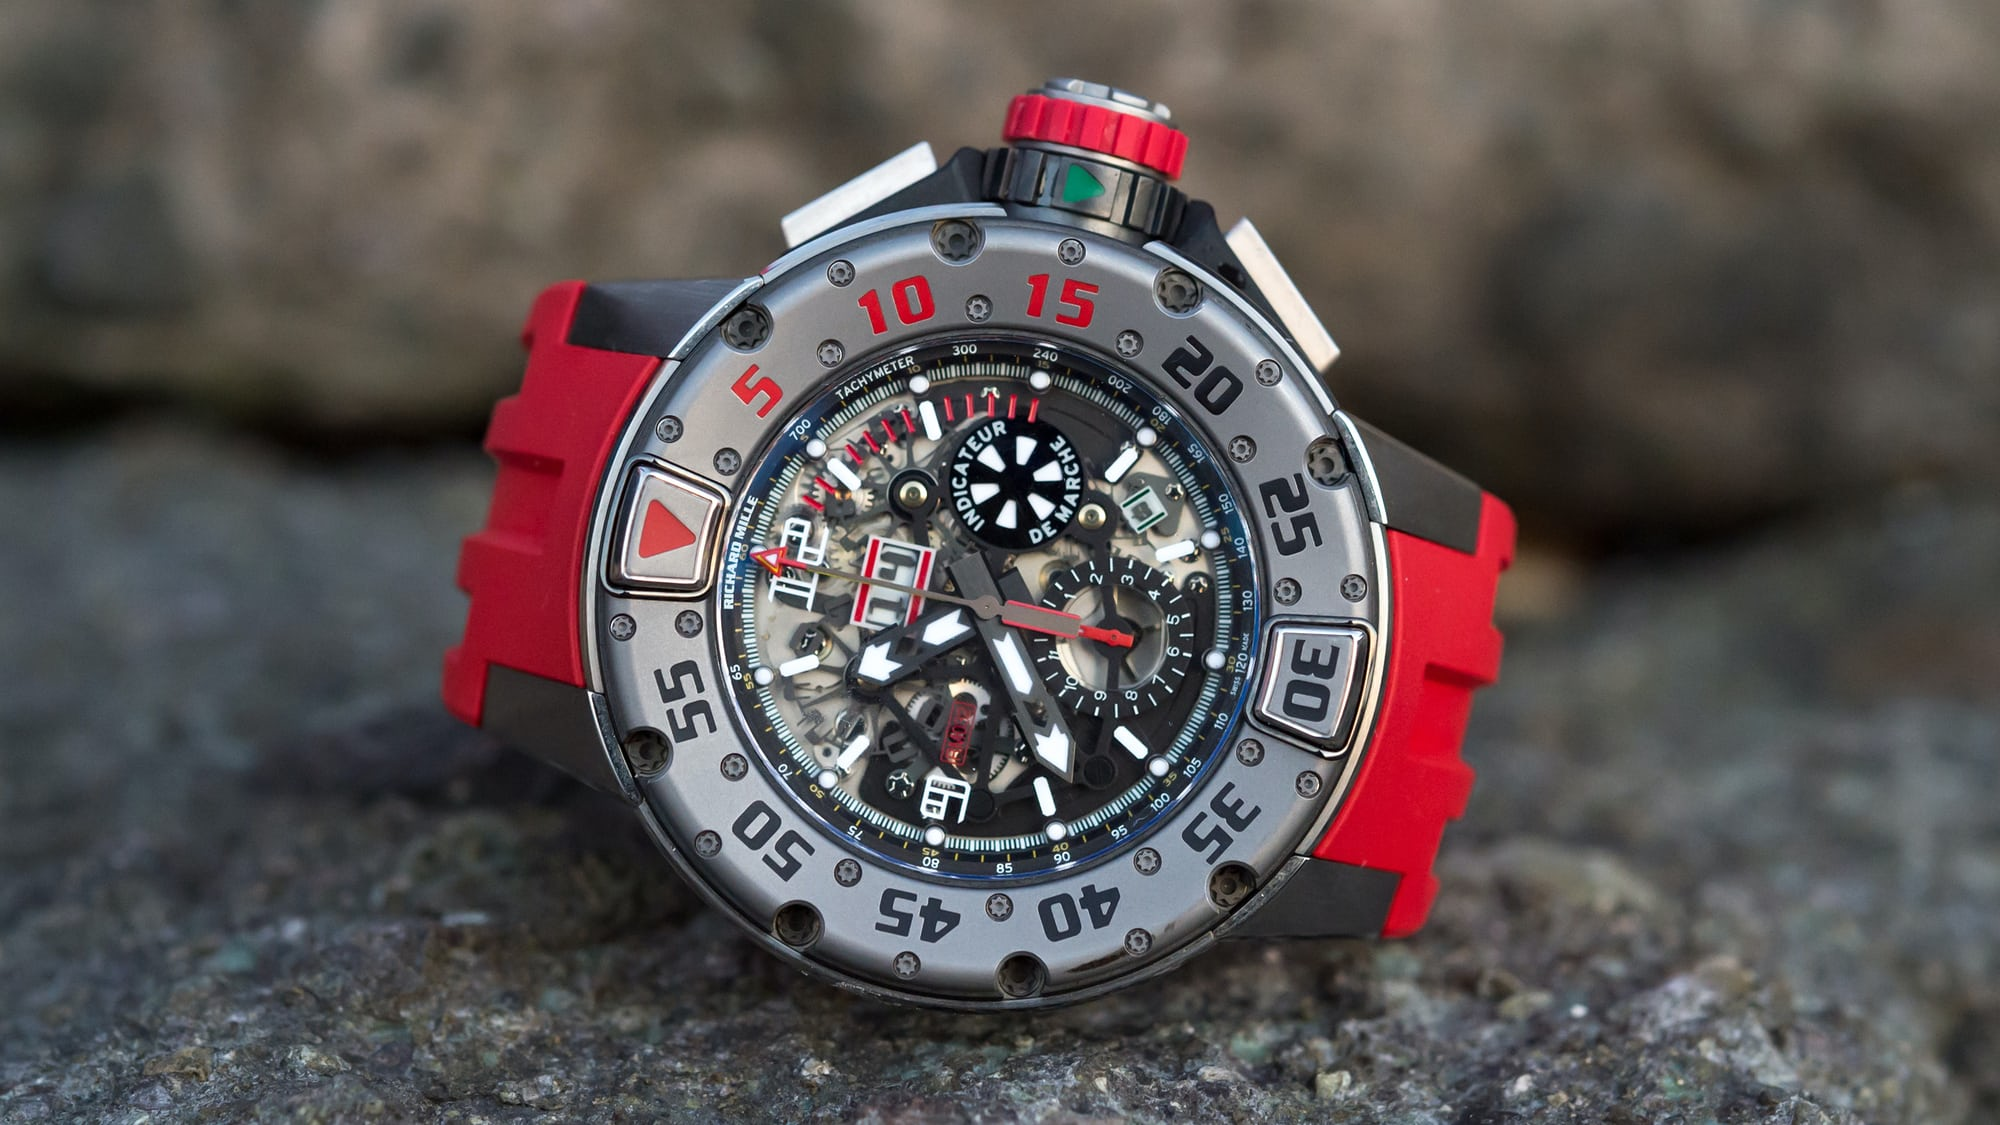 Rm032 hero.jpg?ixlib=rails 1.1 Hands-On: The Richard Mille RM 032 Diver Flyback Chronograph Hands-On: The Richard Mille RM 032 Diver Flyback Chronograph RM032 hero